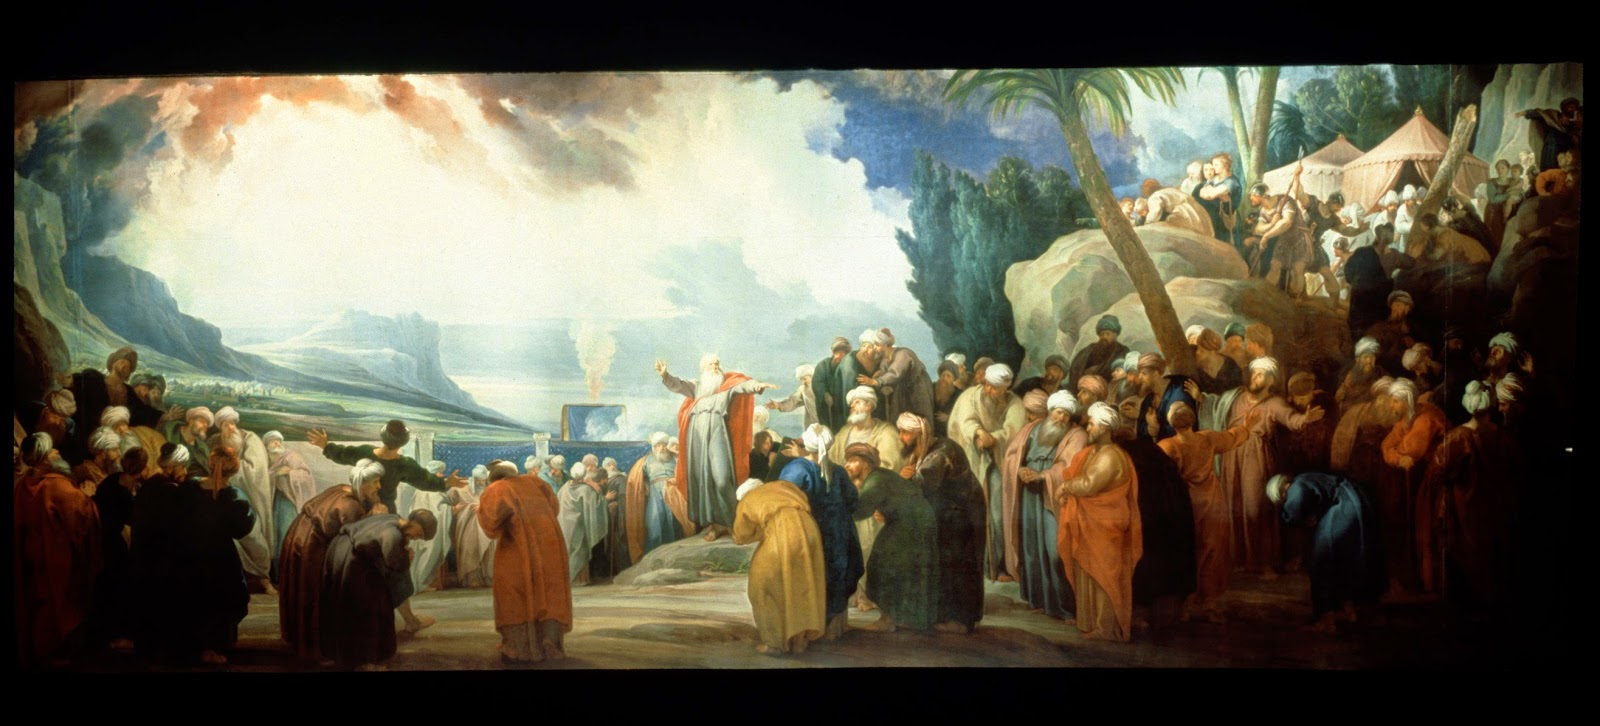 http://commons.wikimedia.org/wiki/File:Jacob_de_Wit_-_Moses_elects_the_Council_of_Seventy_Elders_-_Google_Art_Project.jpg